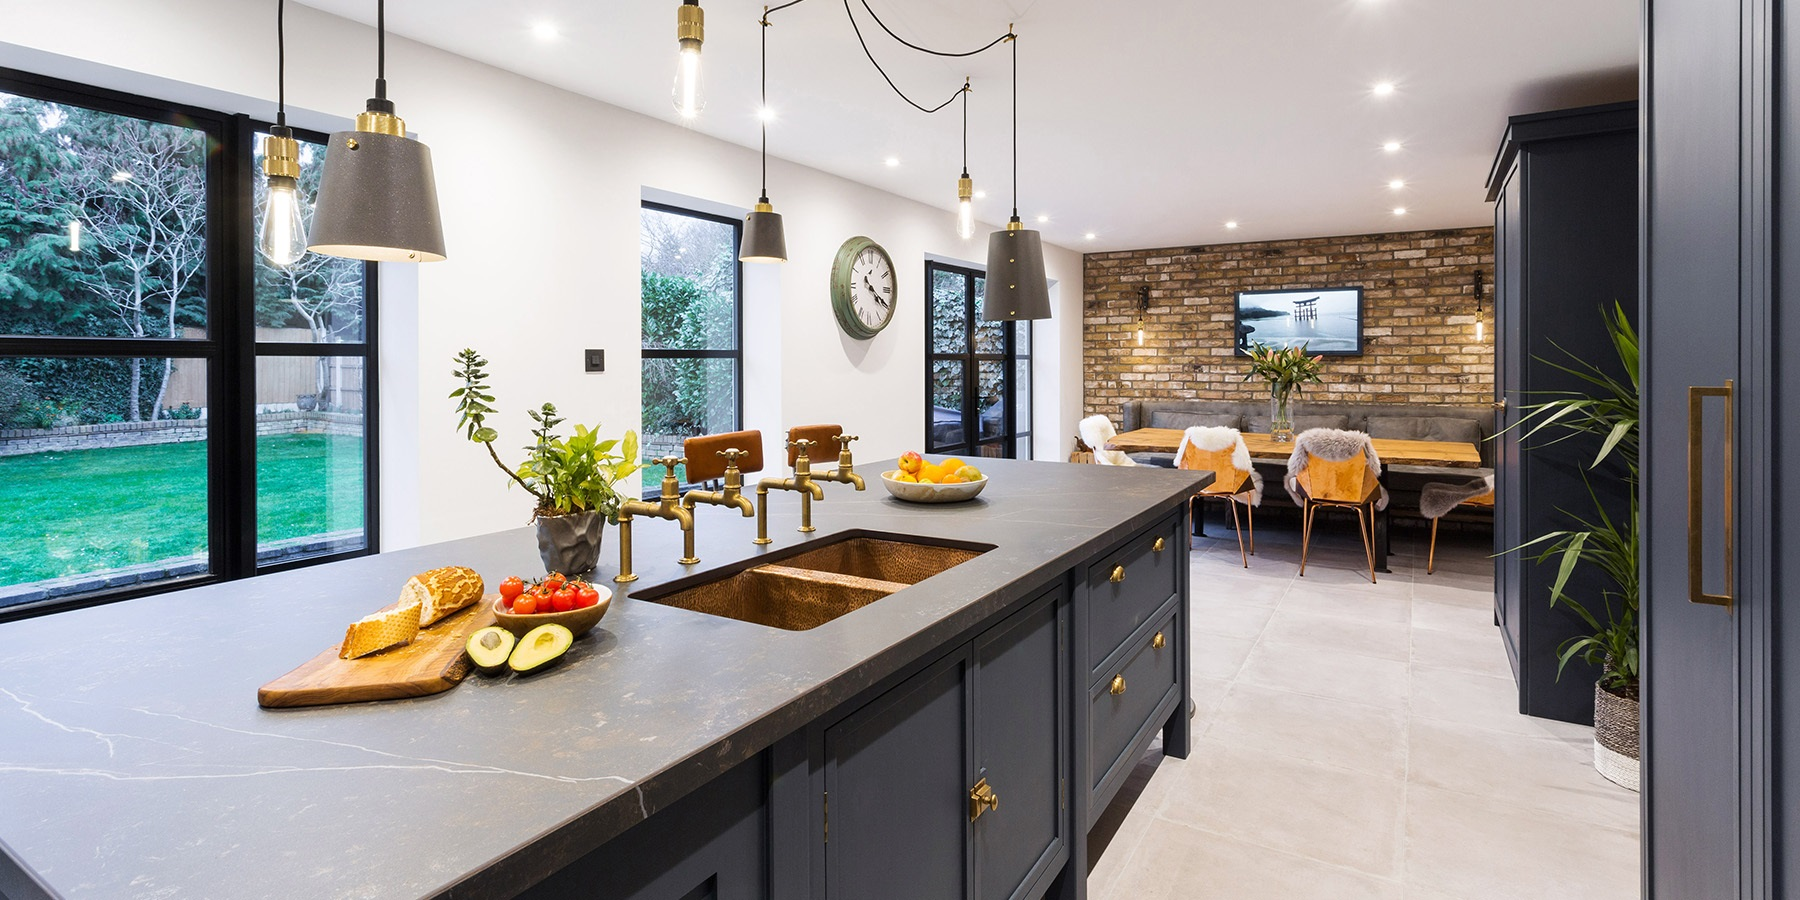 Industrial Navy Blue Shaker Kitchen - Burlanes bespoke Decolane kitchen, designed and handmade in the UK.